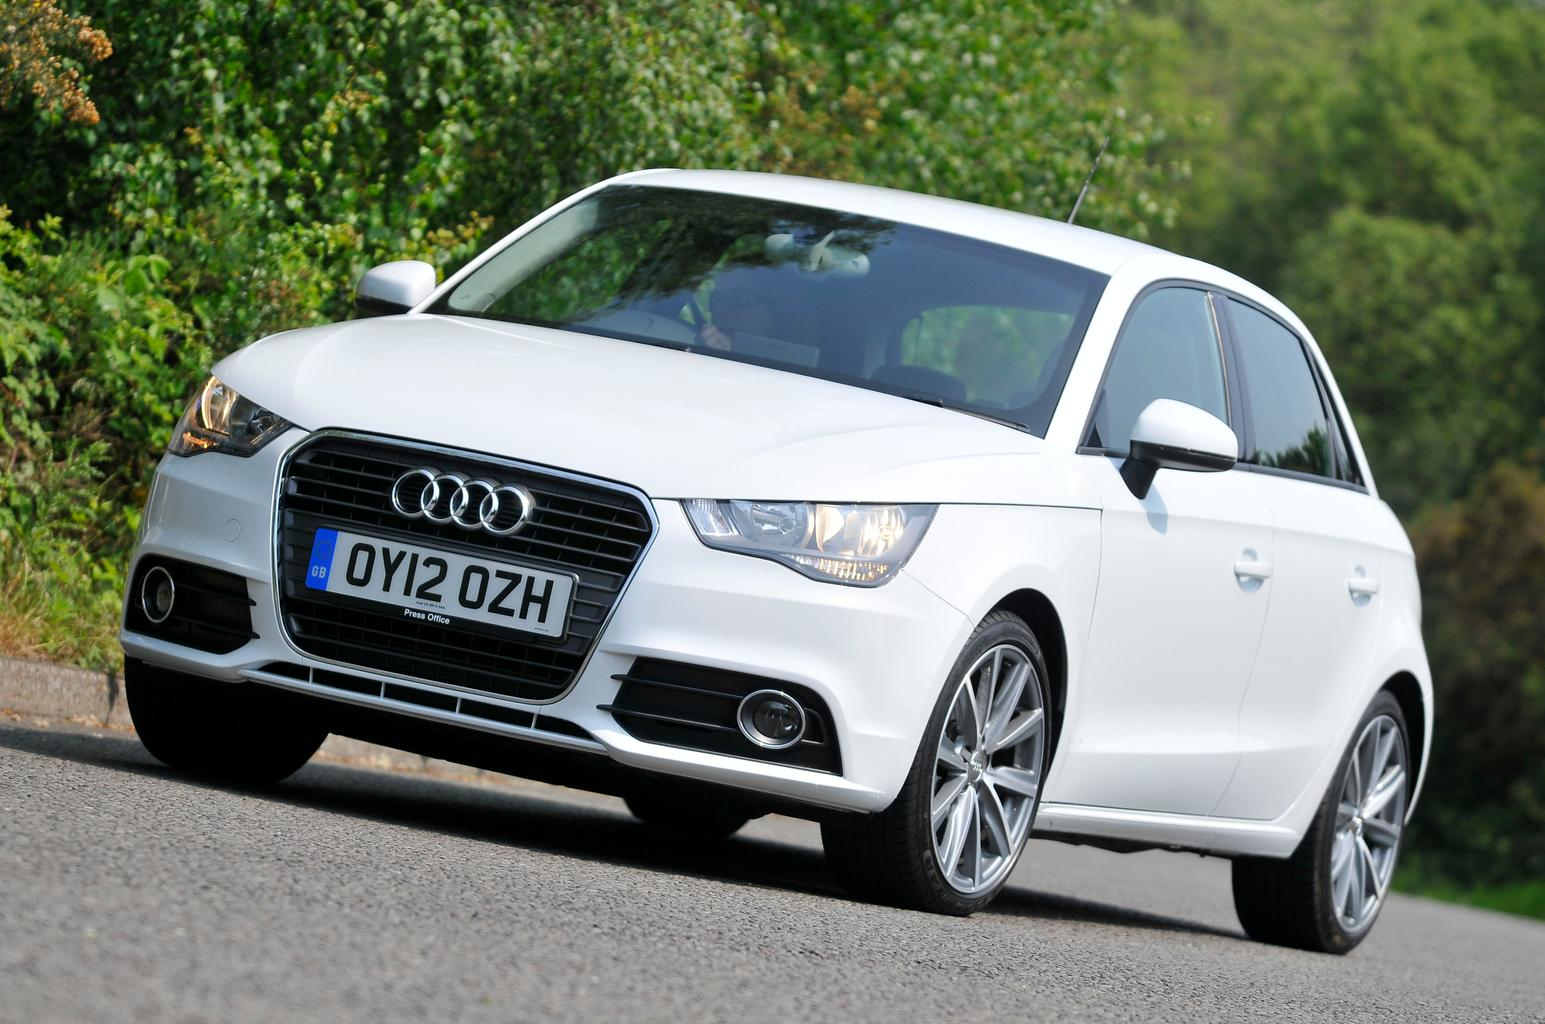 Best used Audis